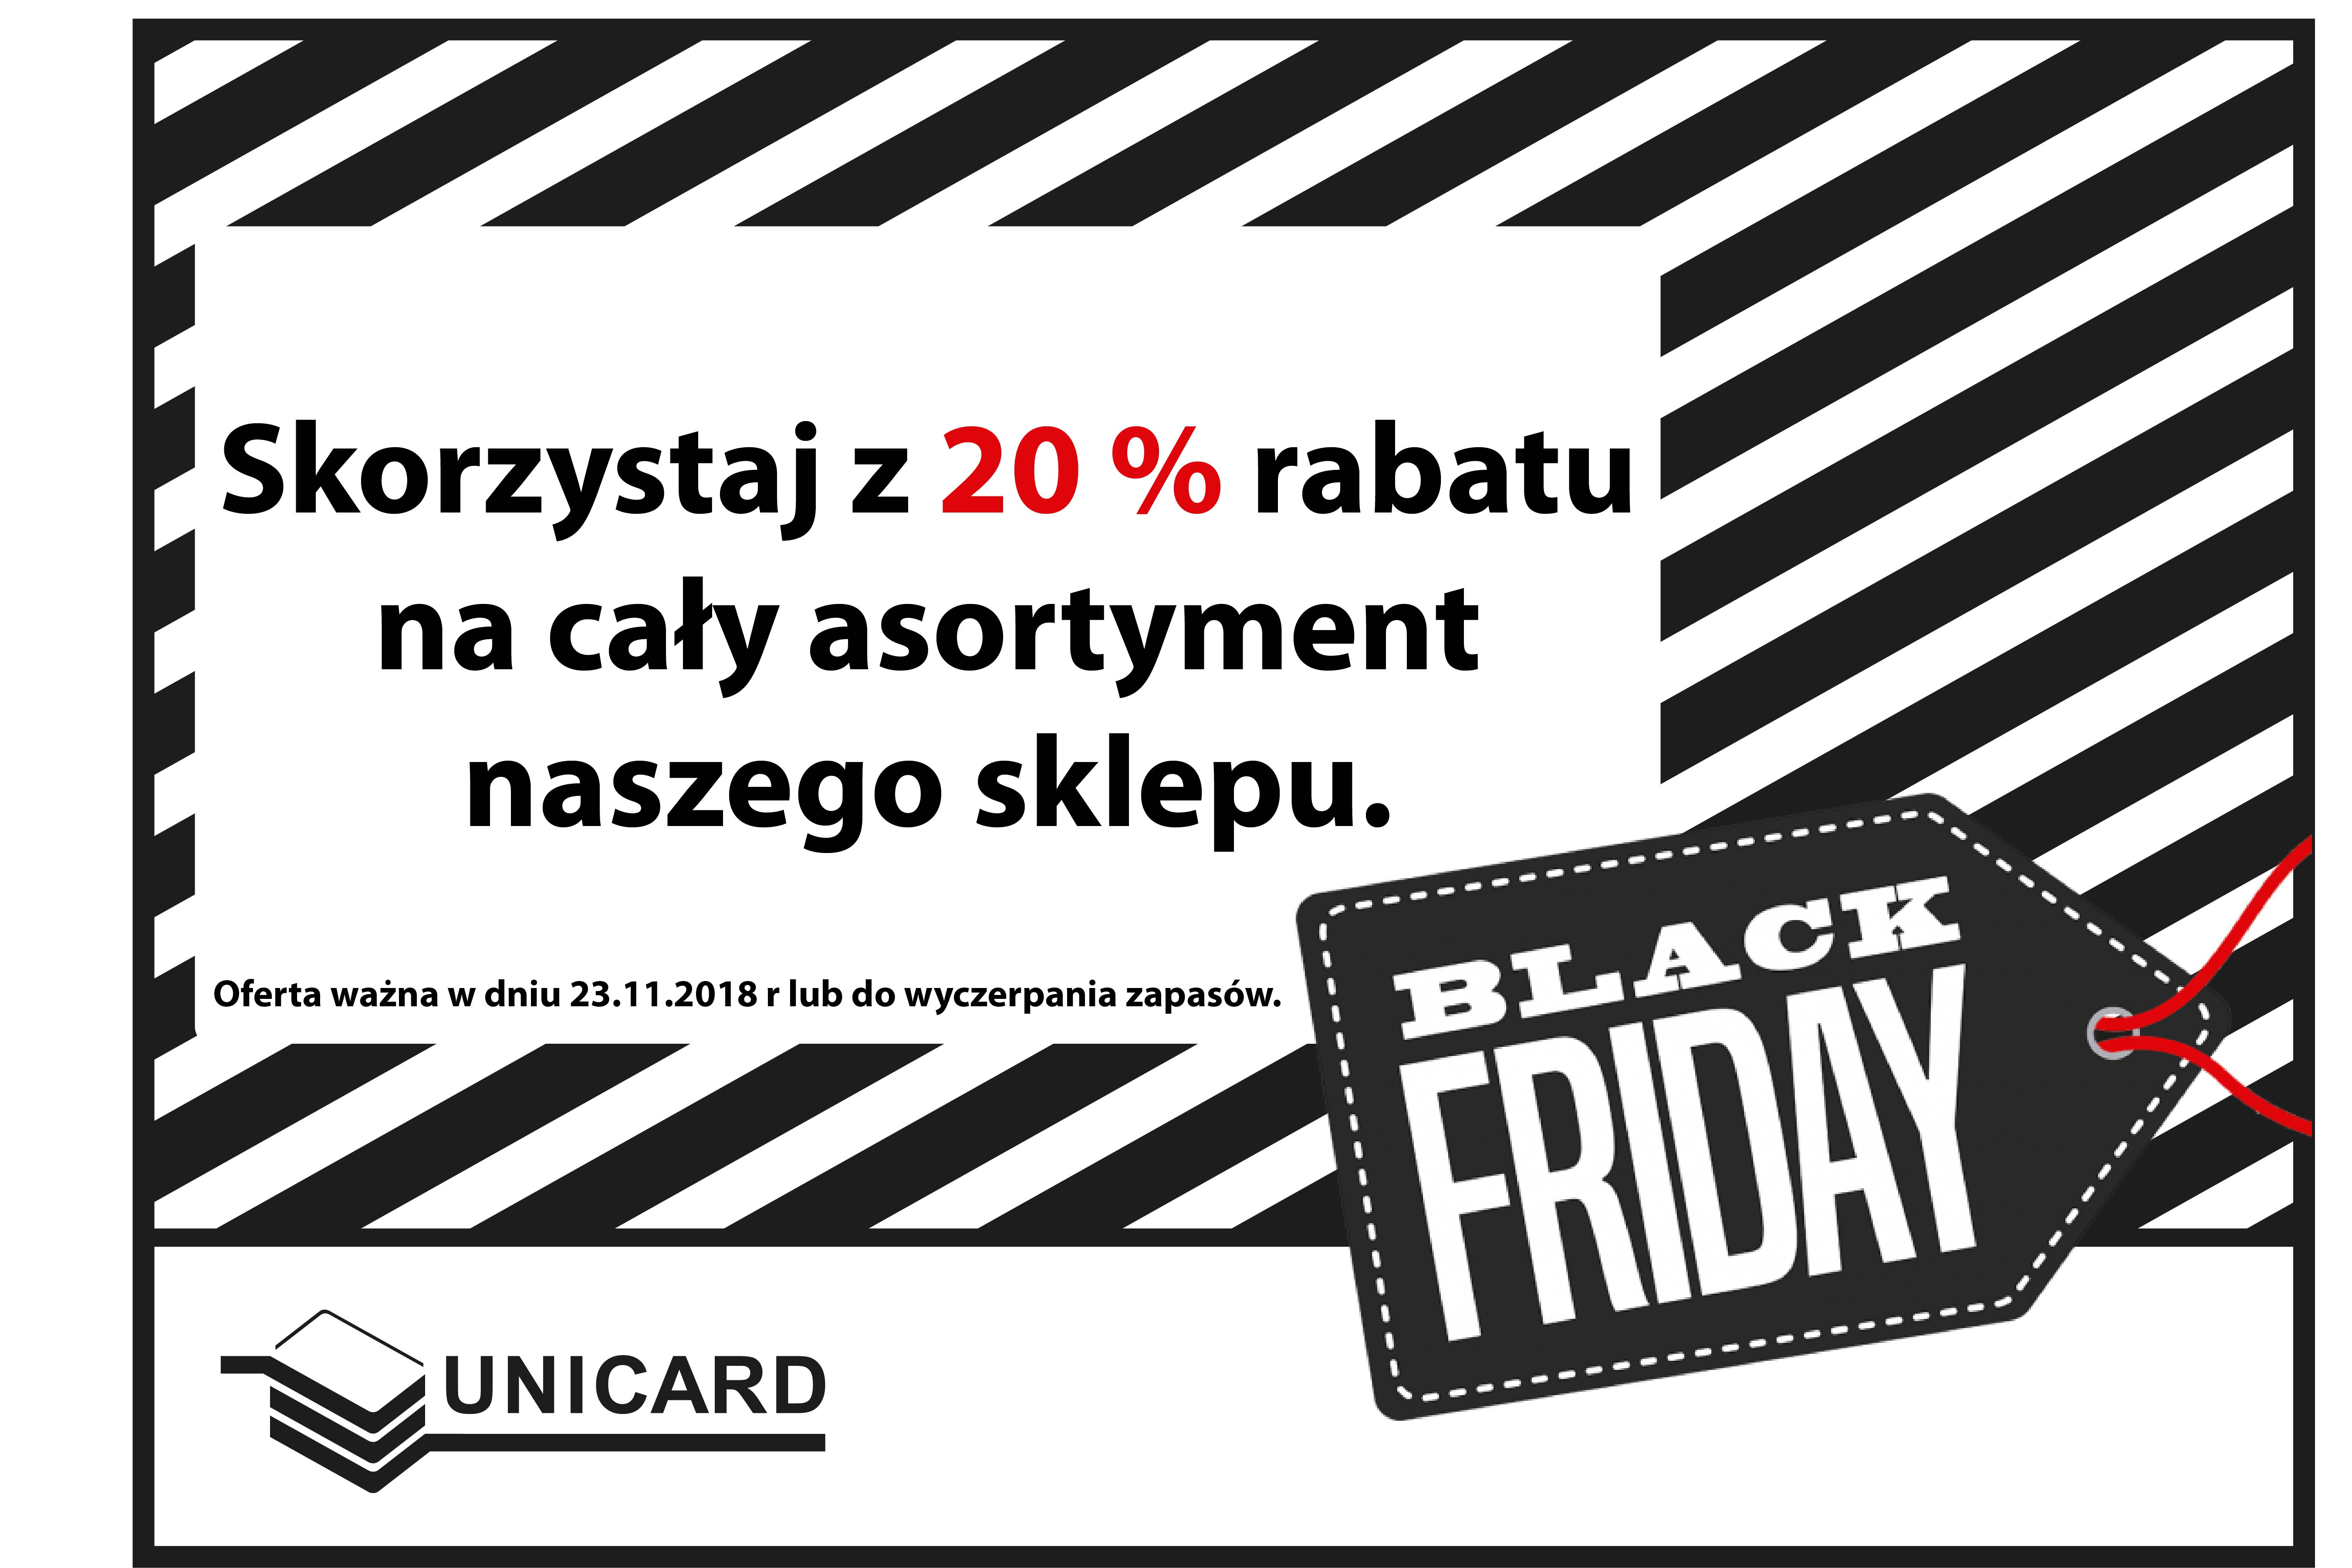 Black Friday w UNICARD